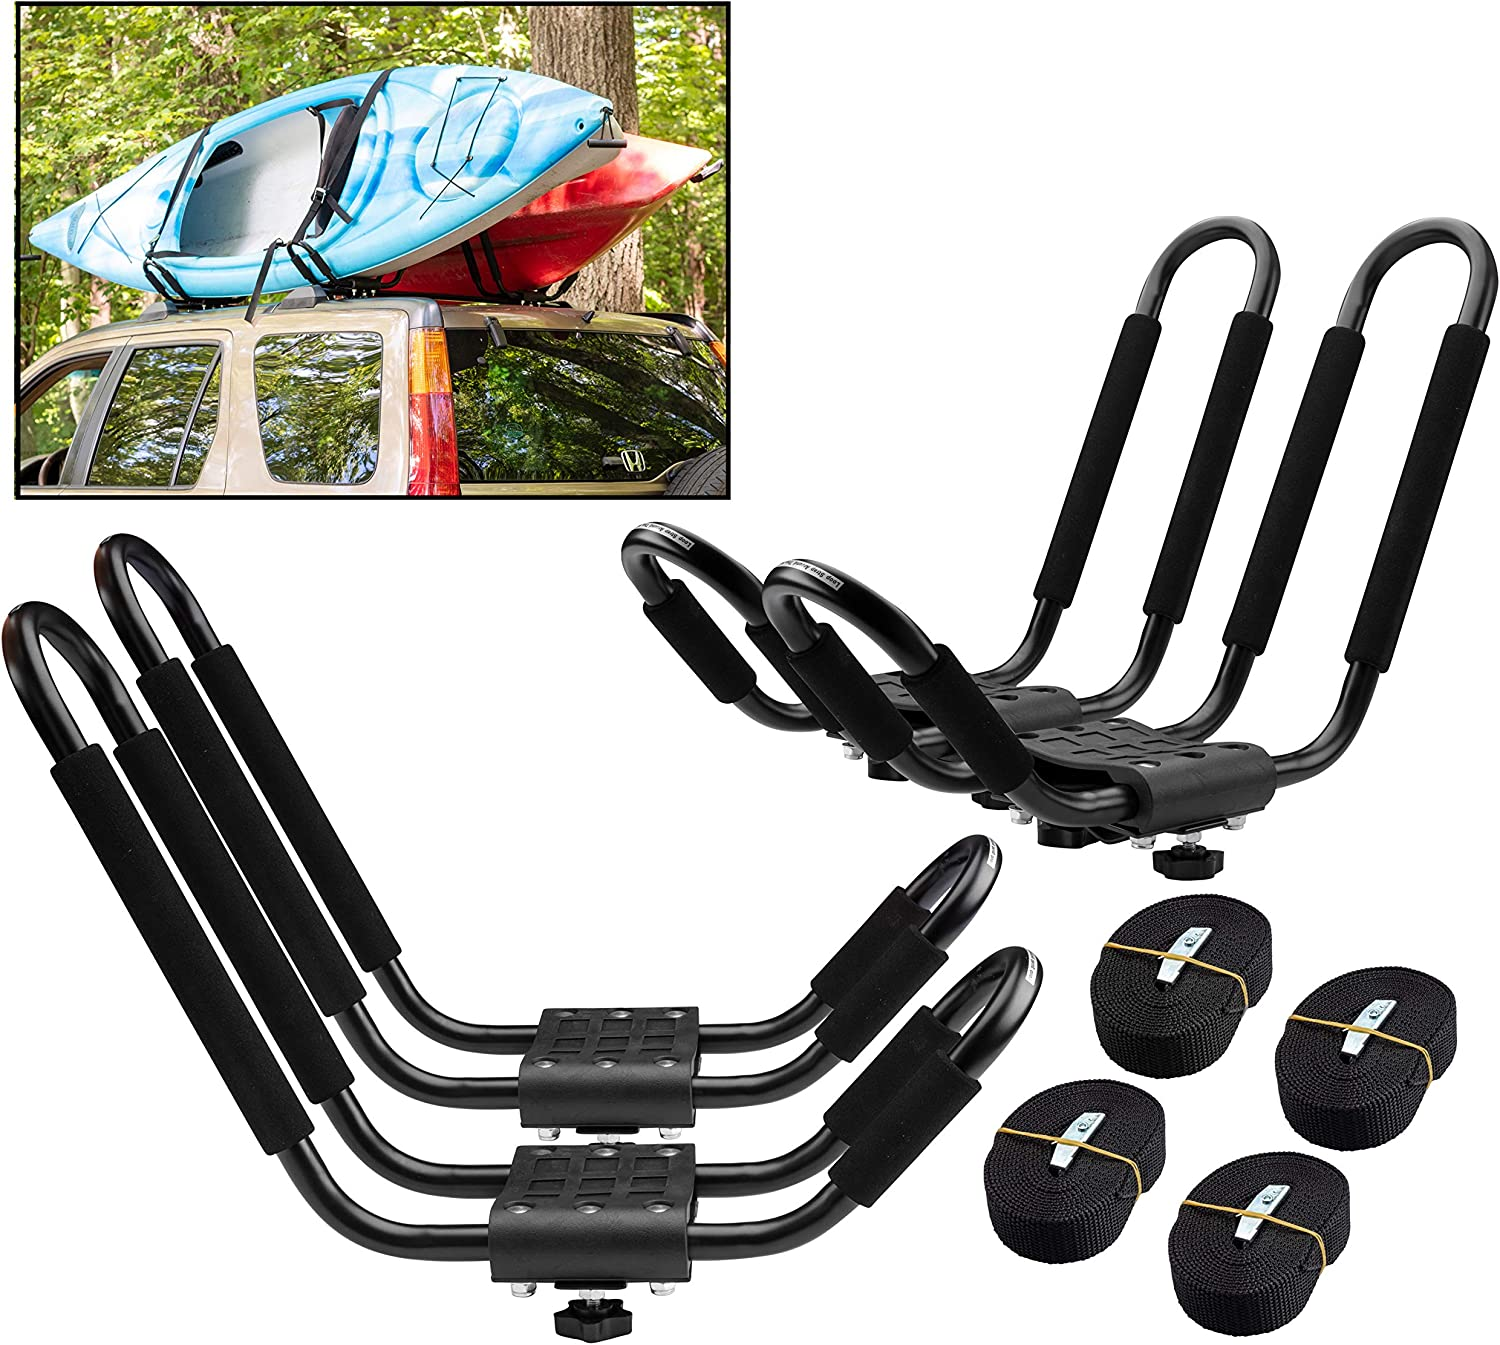 PaddleSports+ Kayak Roof Rack Sets for Two and Cars - Sales results No. 1 SUVs Philadelphia Mall